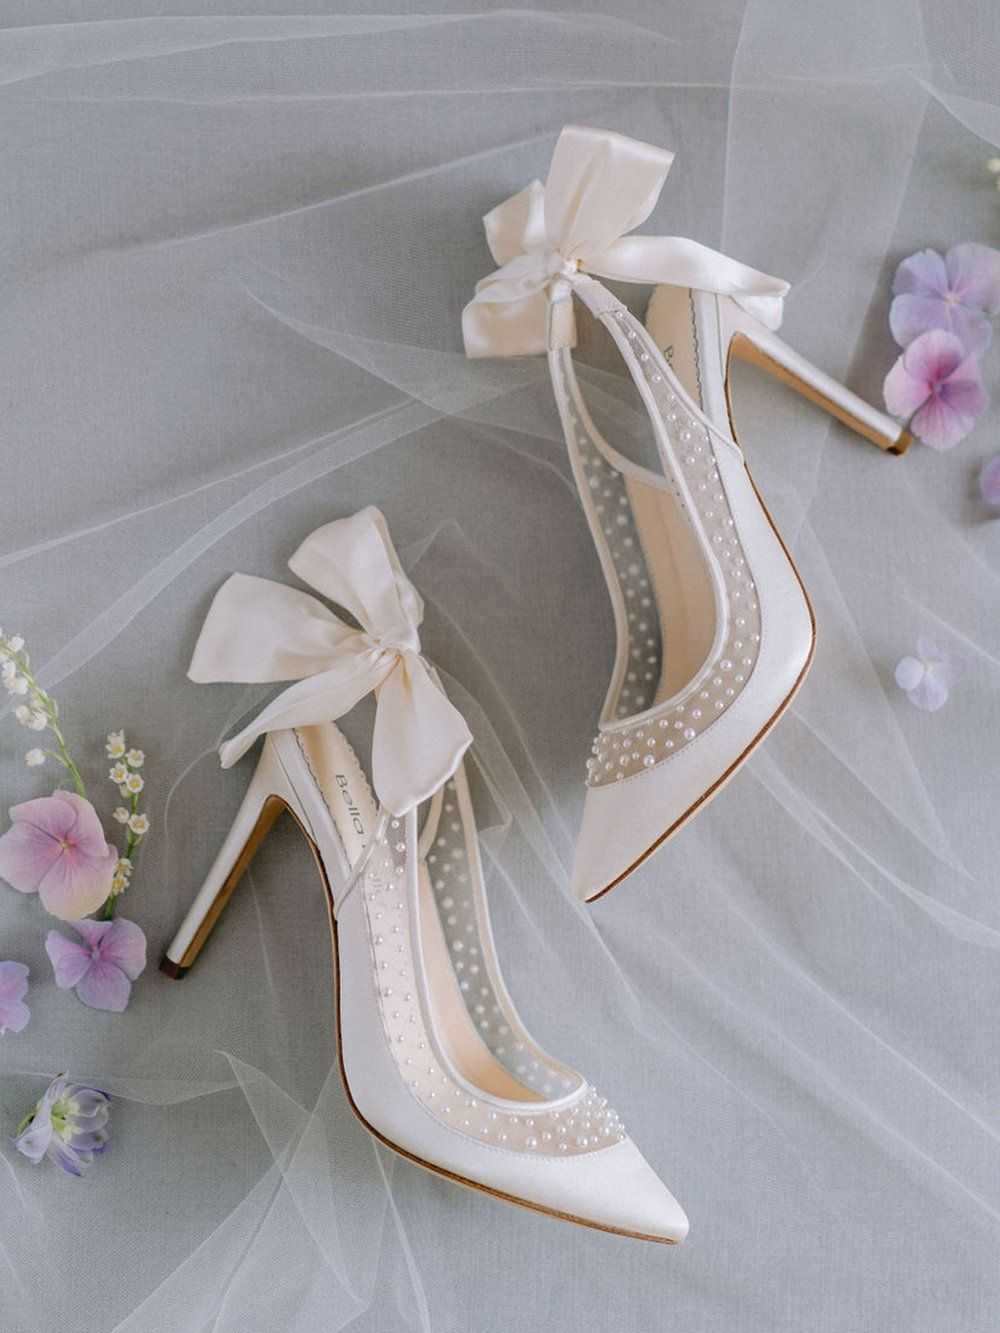 Bling Wedding Shoes Ivory Bridal Shoes With Rhinestones Etsy In 2021 Wedding Shoes Lace Ivory Wedding Shoes Bling Wedding Shoes